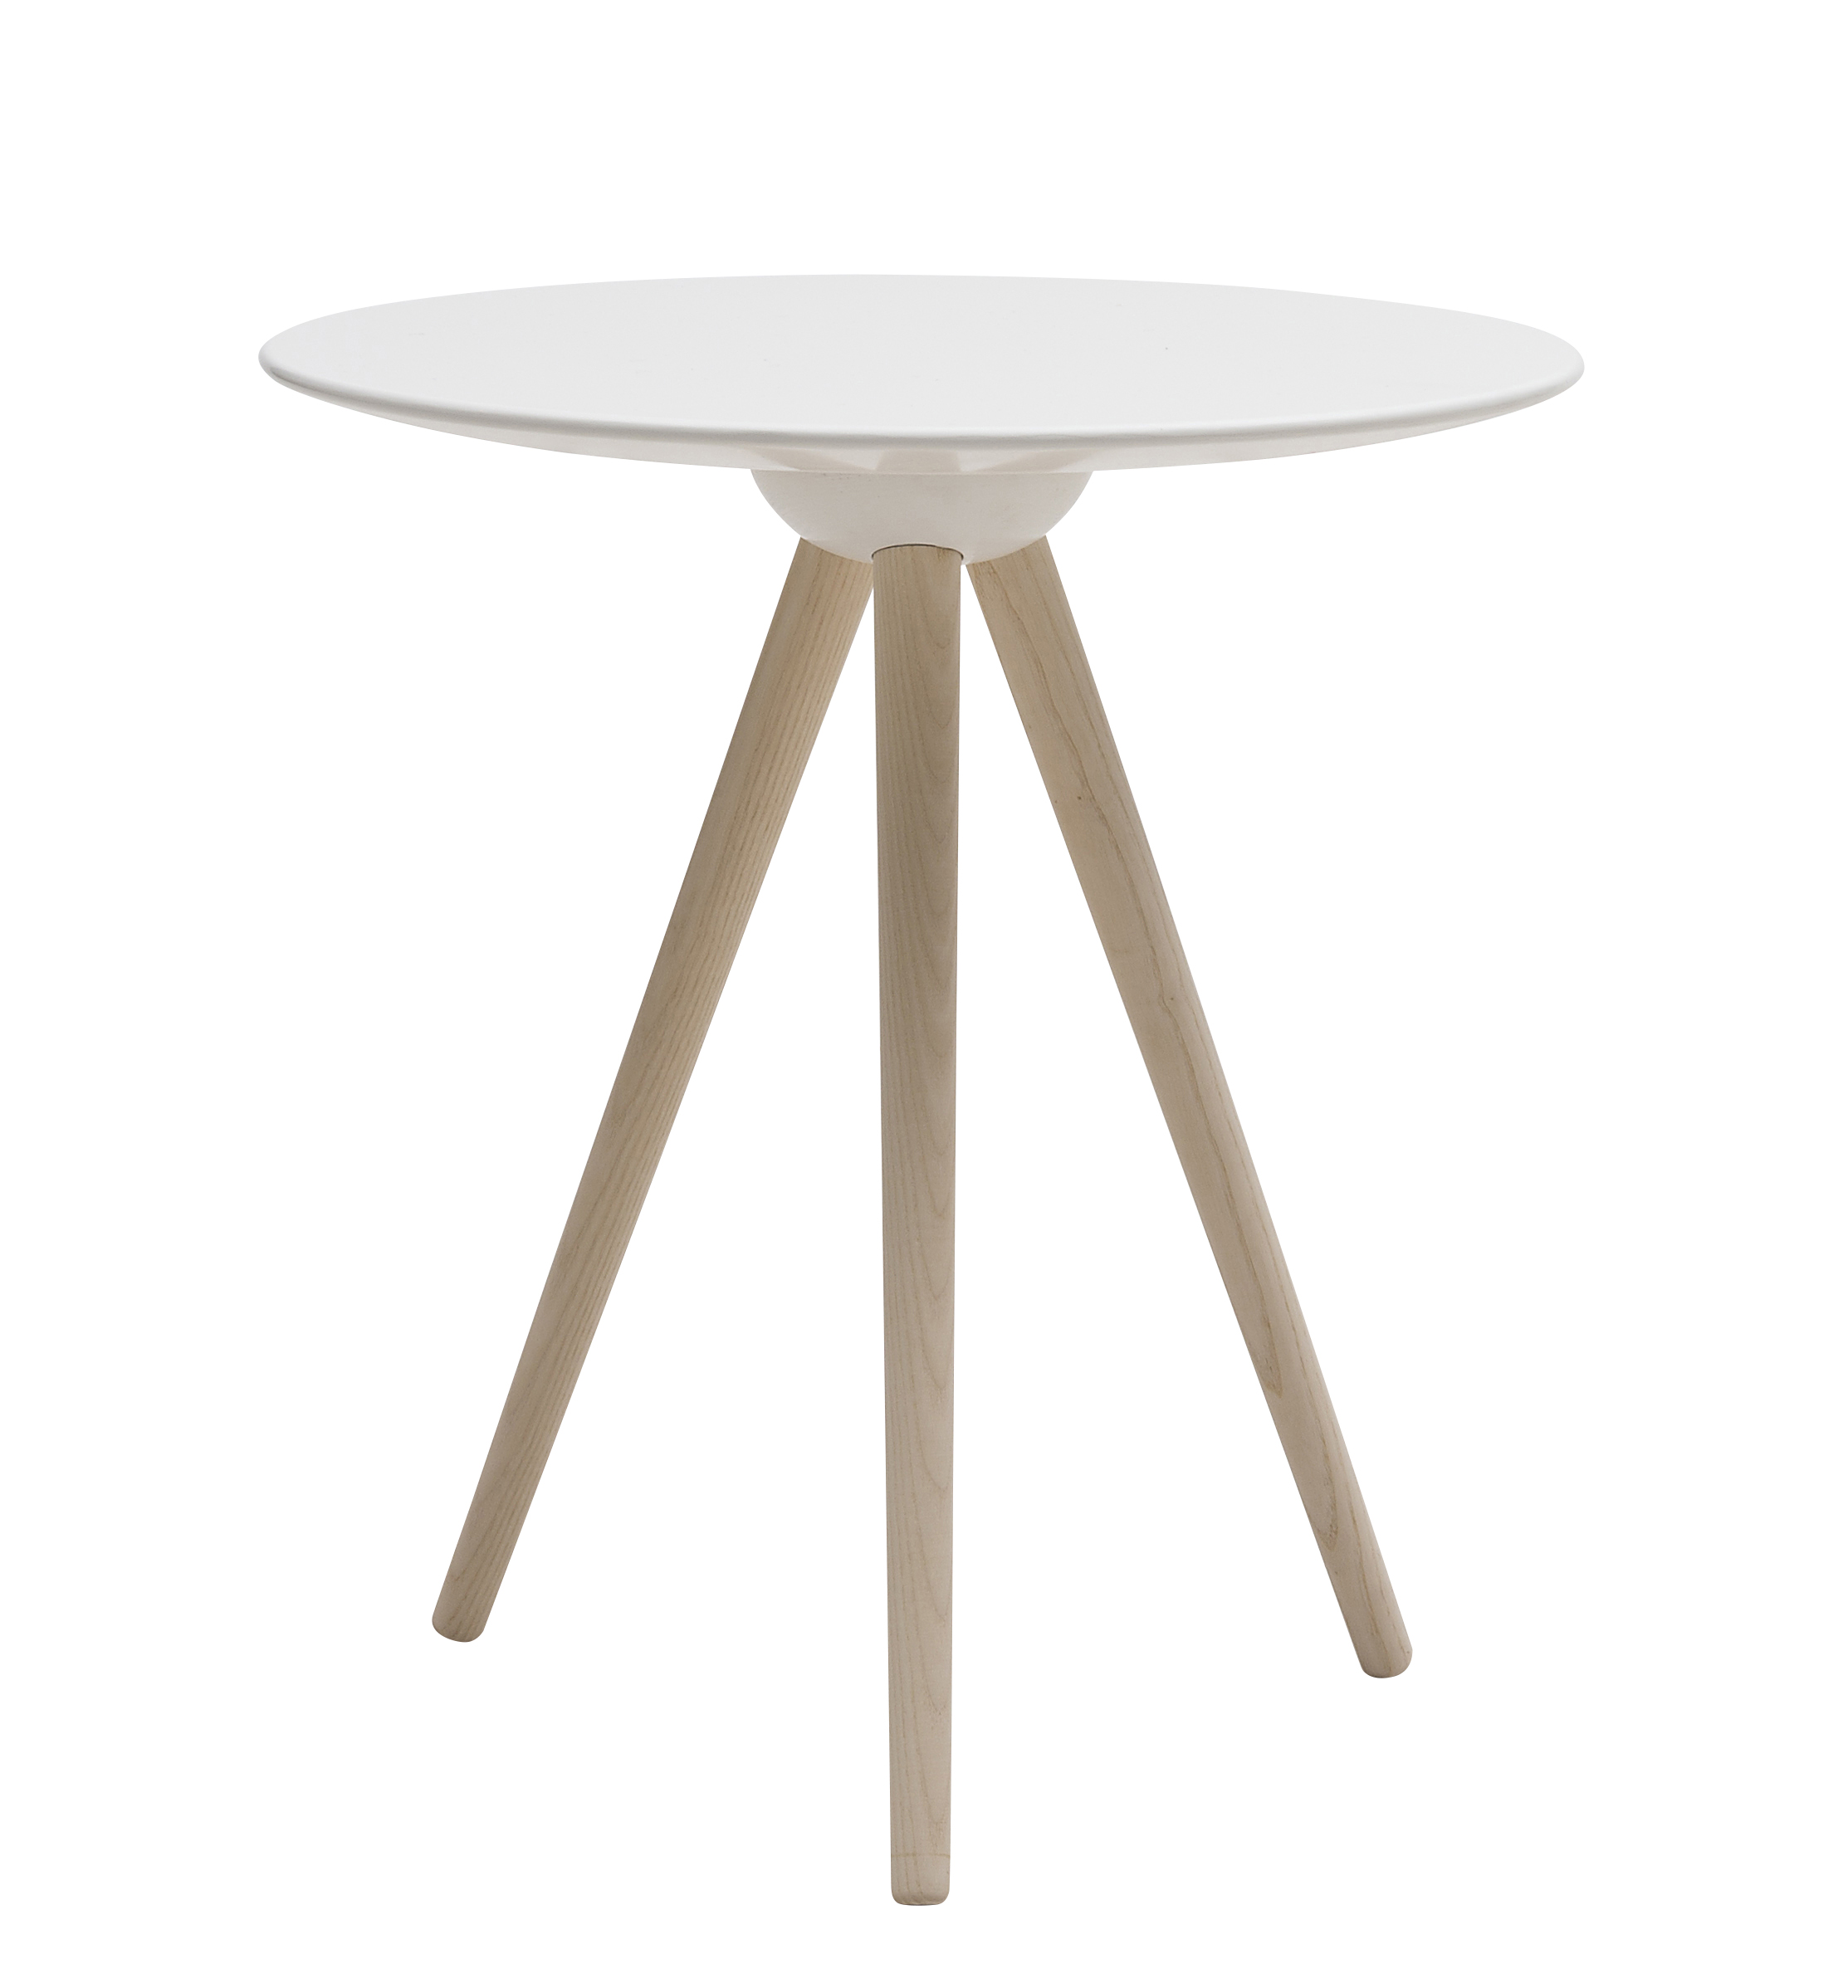 petite table ronde scandinave avec pieds bois et plateau blanc. Black Bedroom Furniture Sets. Home Design Ideas